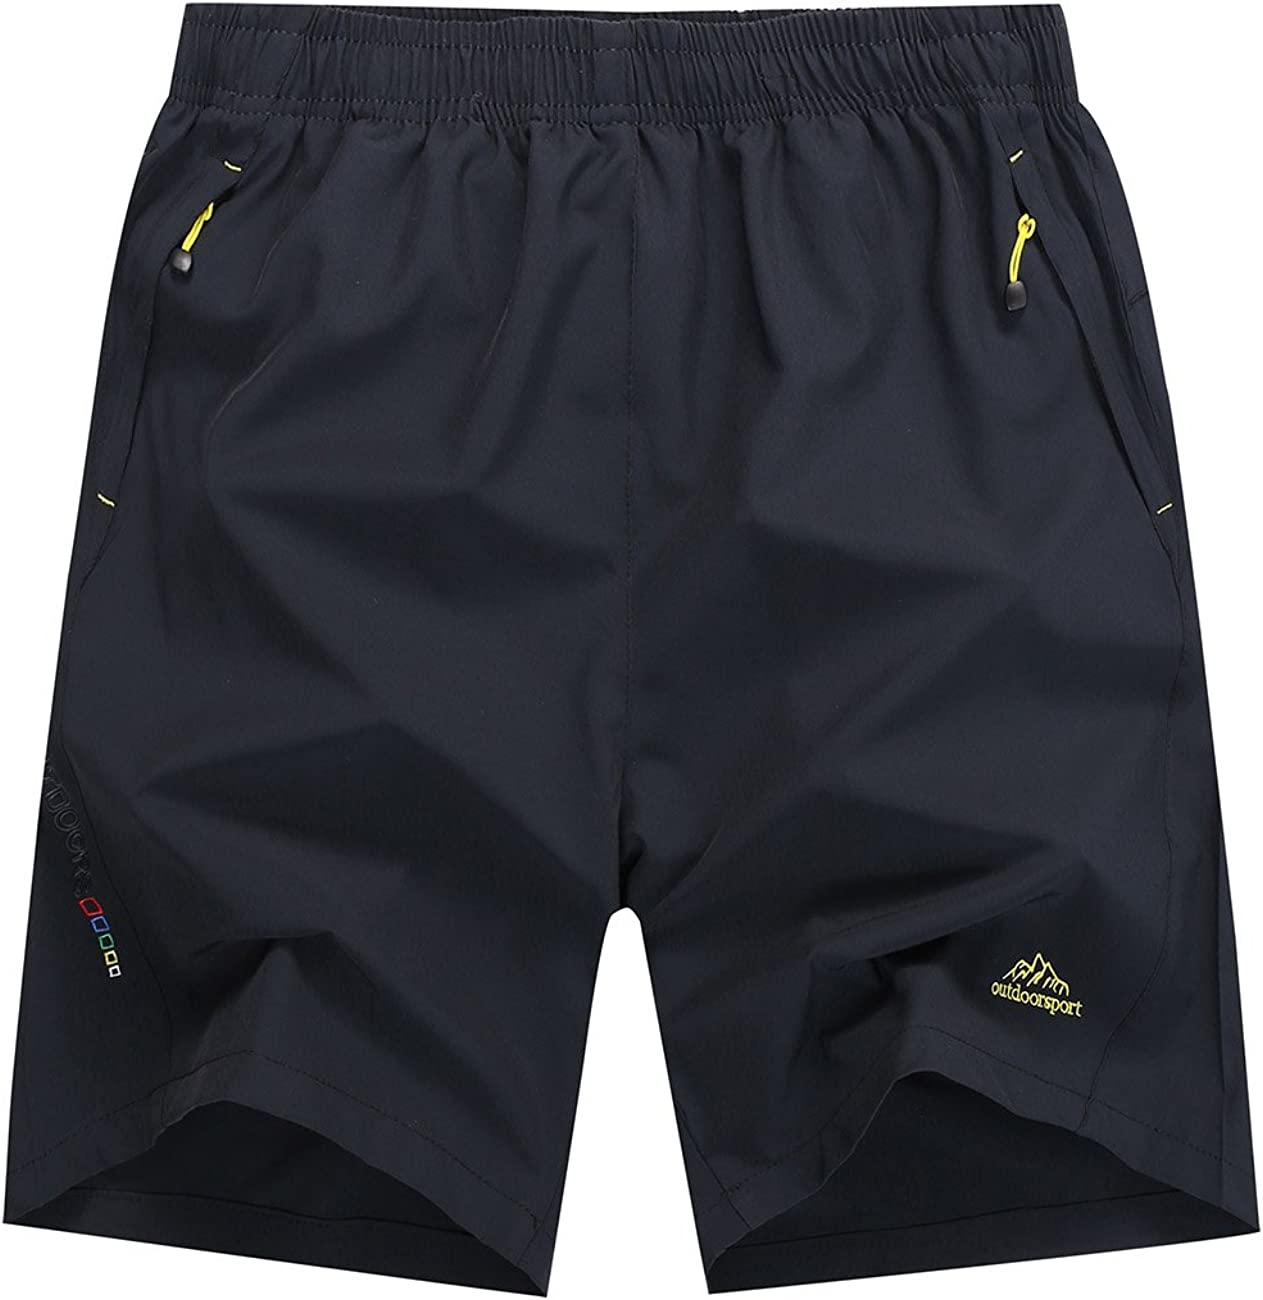 Yifun New mail order Outdoor Mens Quick Don't miss the campaign Shorts Camping Hiking Dry